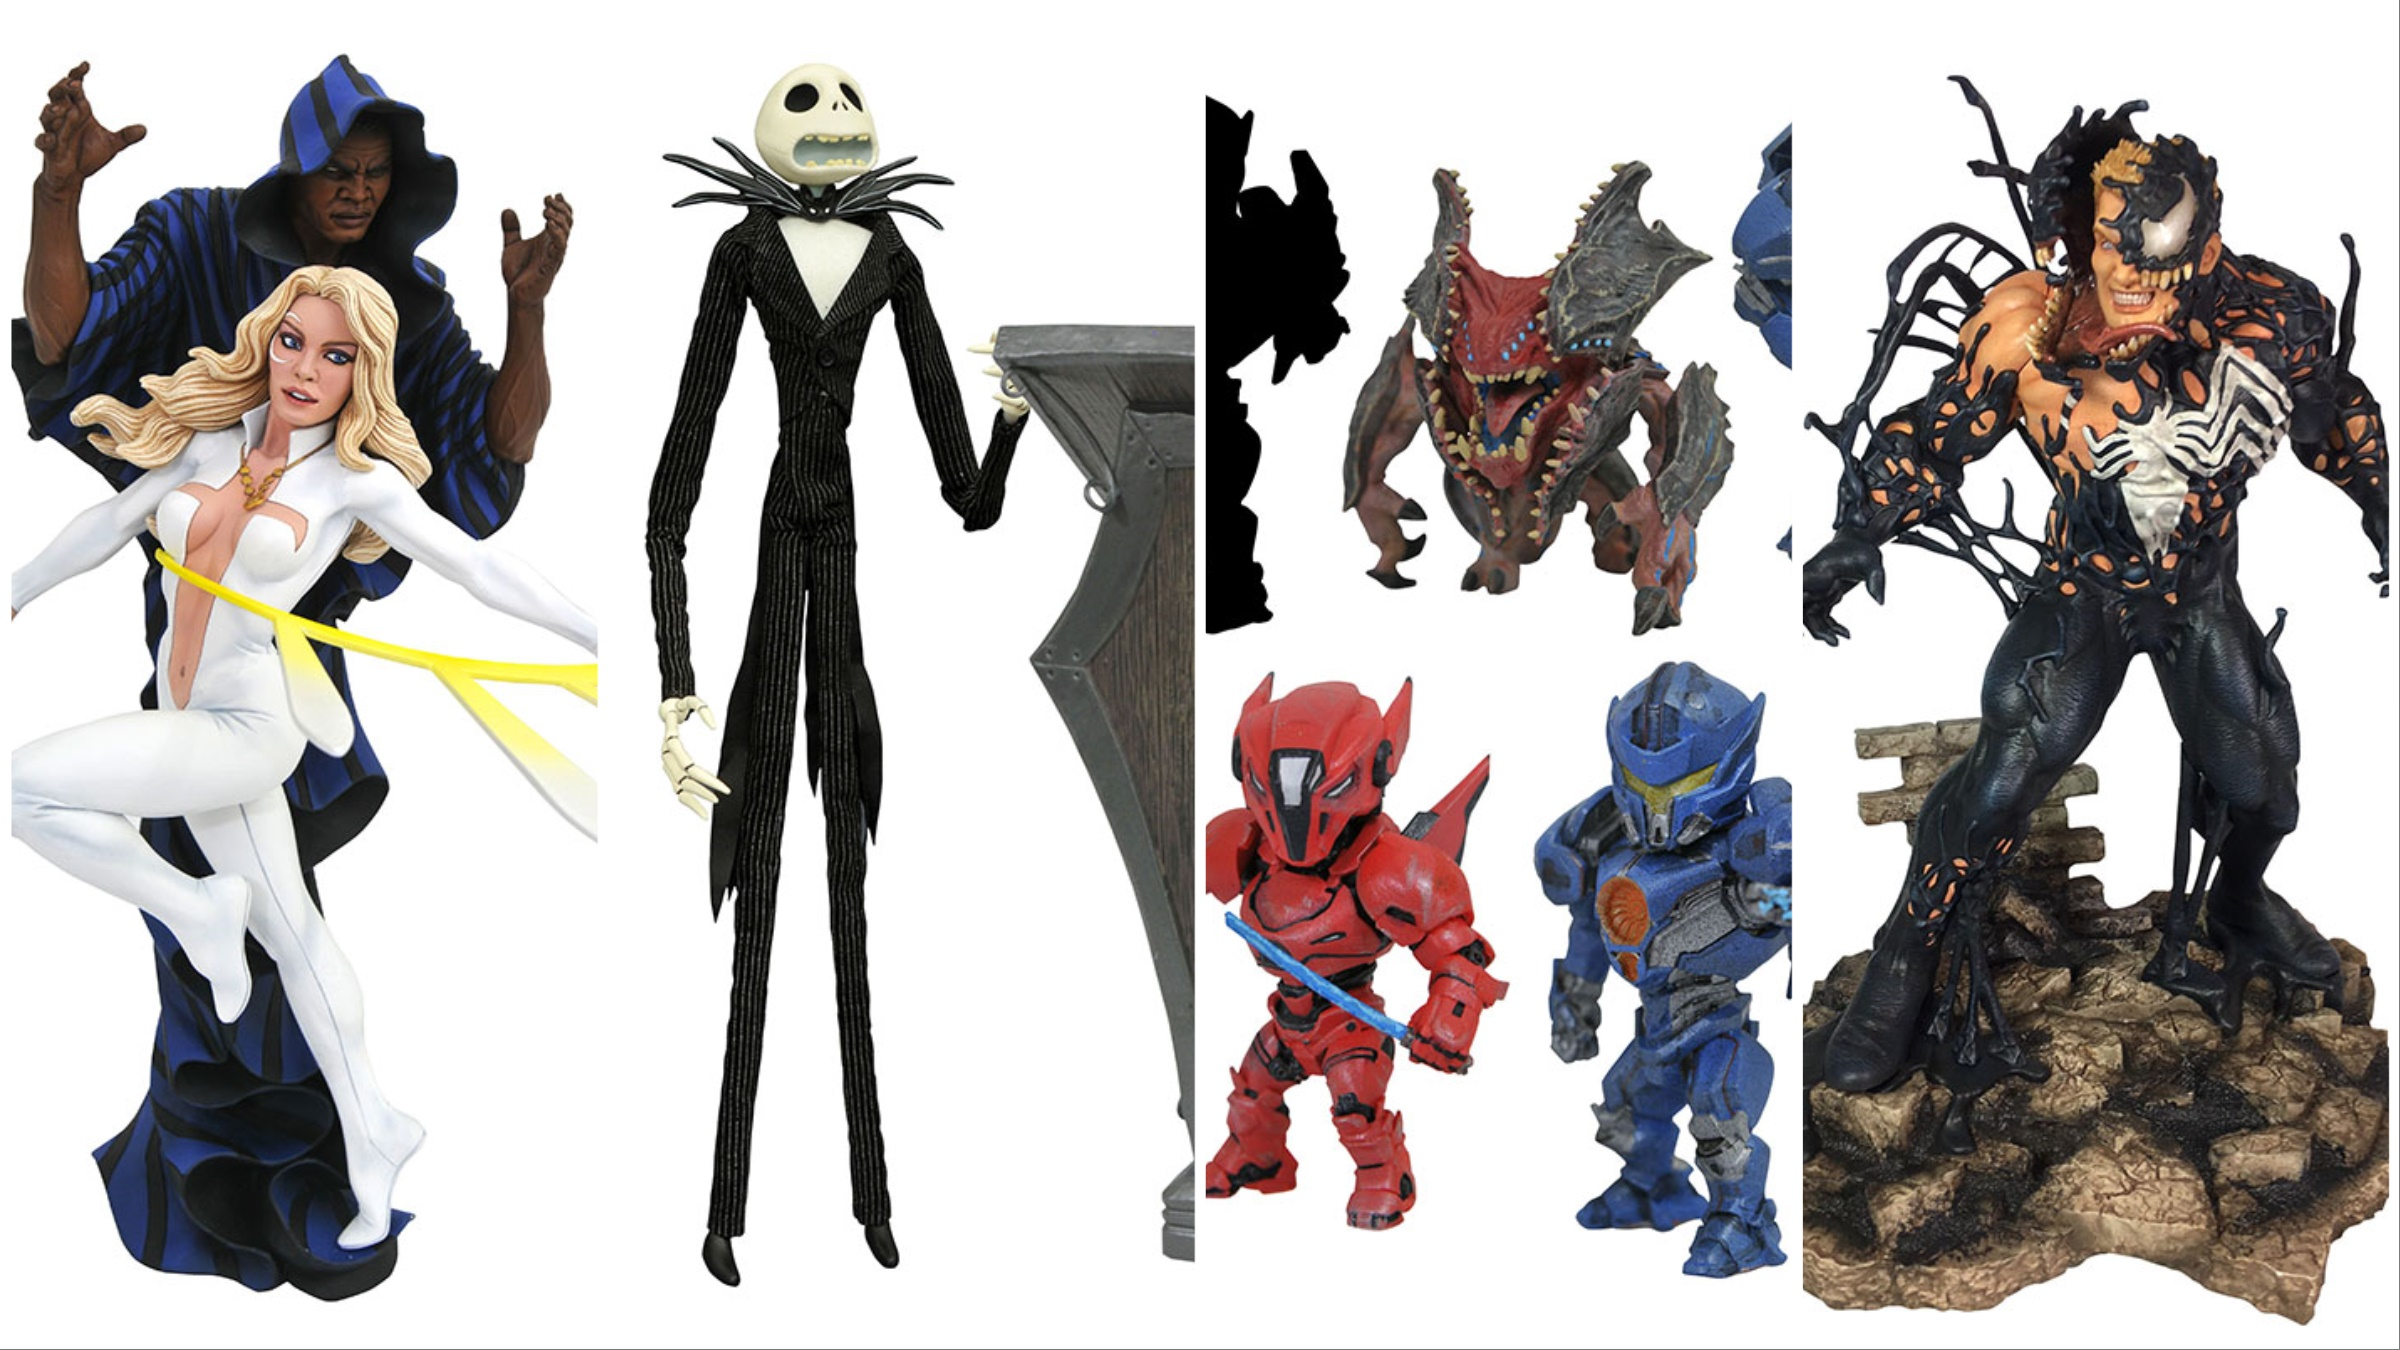 Diamond Select Toys In Stores Now ? Venom, Black Panther, Pacific Rim and More!